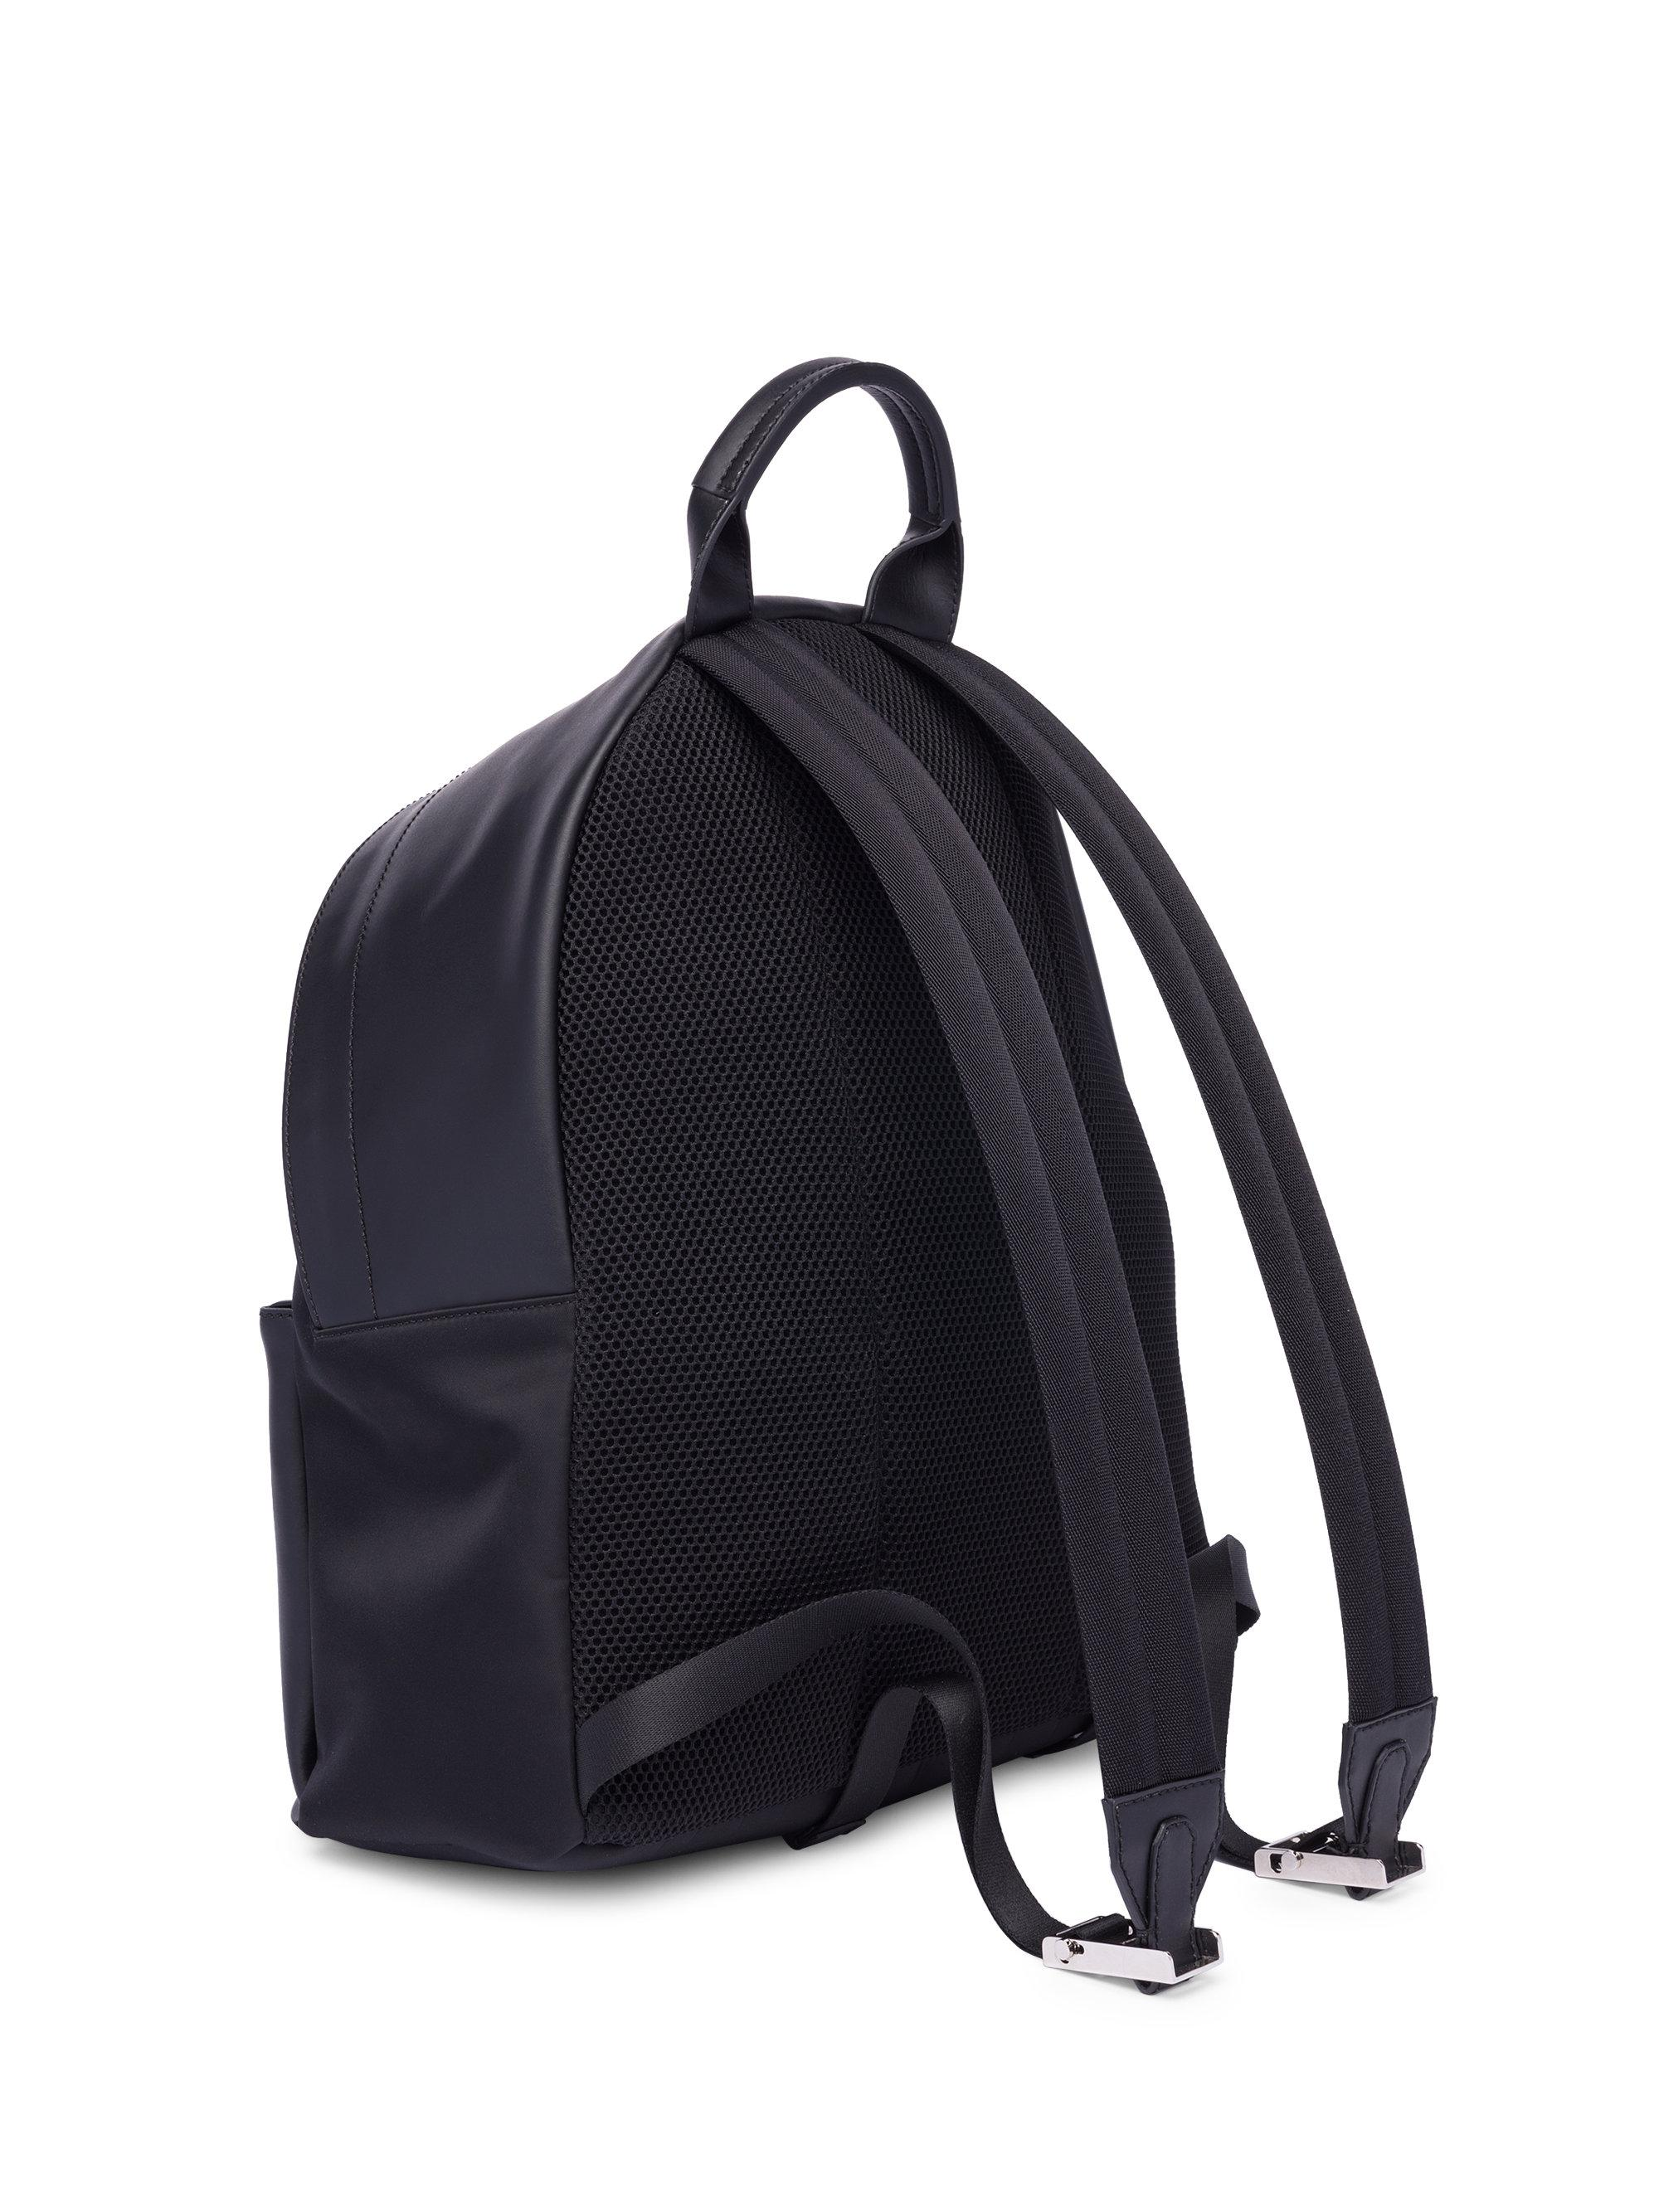 Lyst - Fendi Butterfly Leather   Tech-twill Backpack in Black for Men c402b5c0bc36a